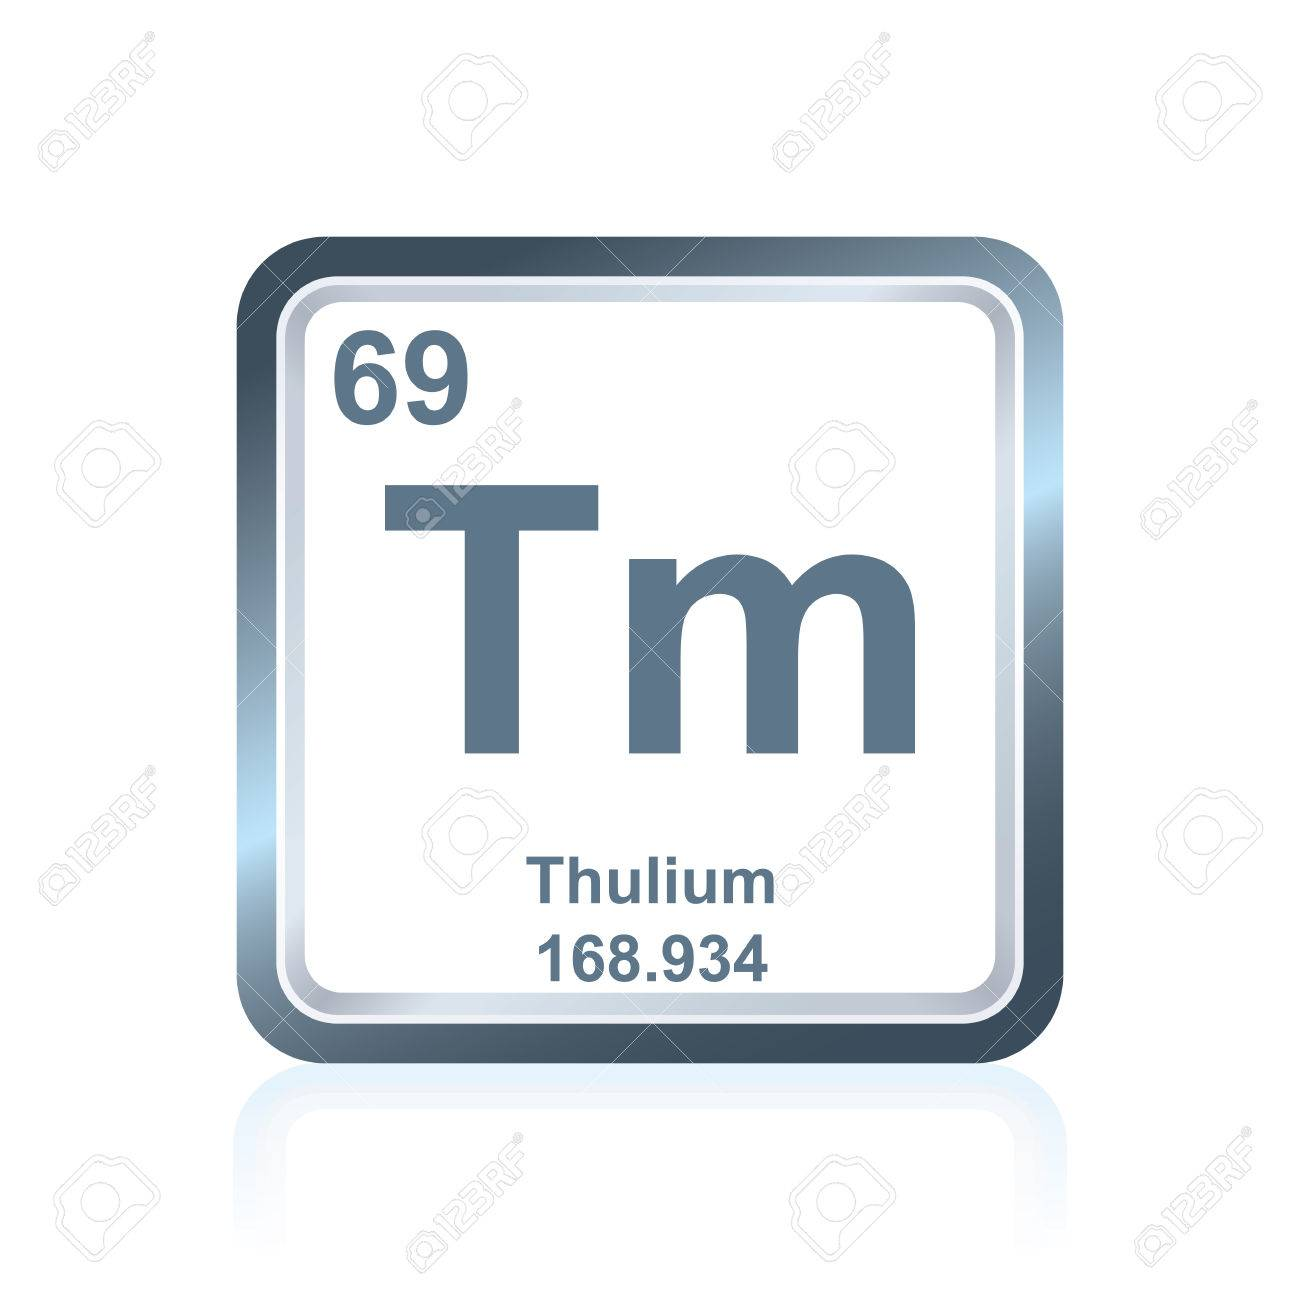 Symbol of chemical element thulium as seen on the periodic table symbol of chemical element thulium as seen on the periodic table of the elements including urtaz